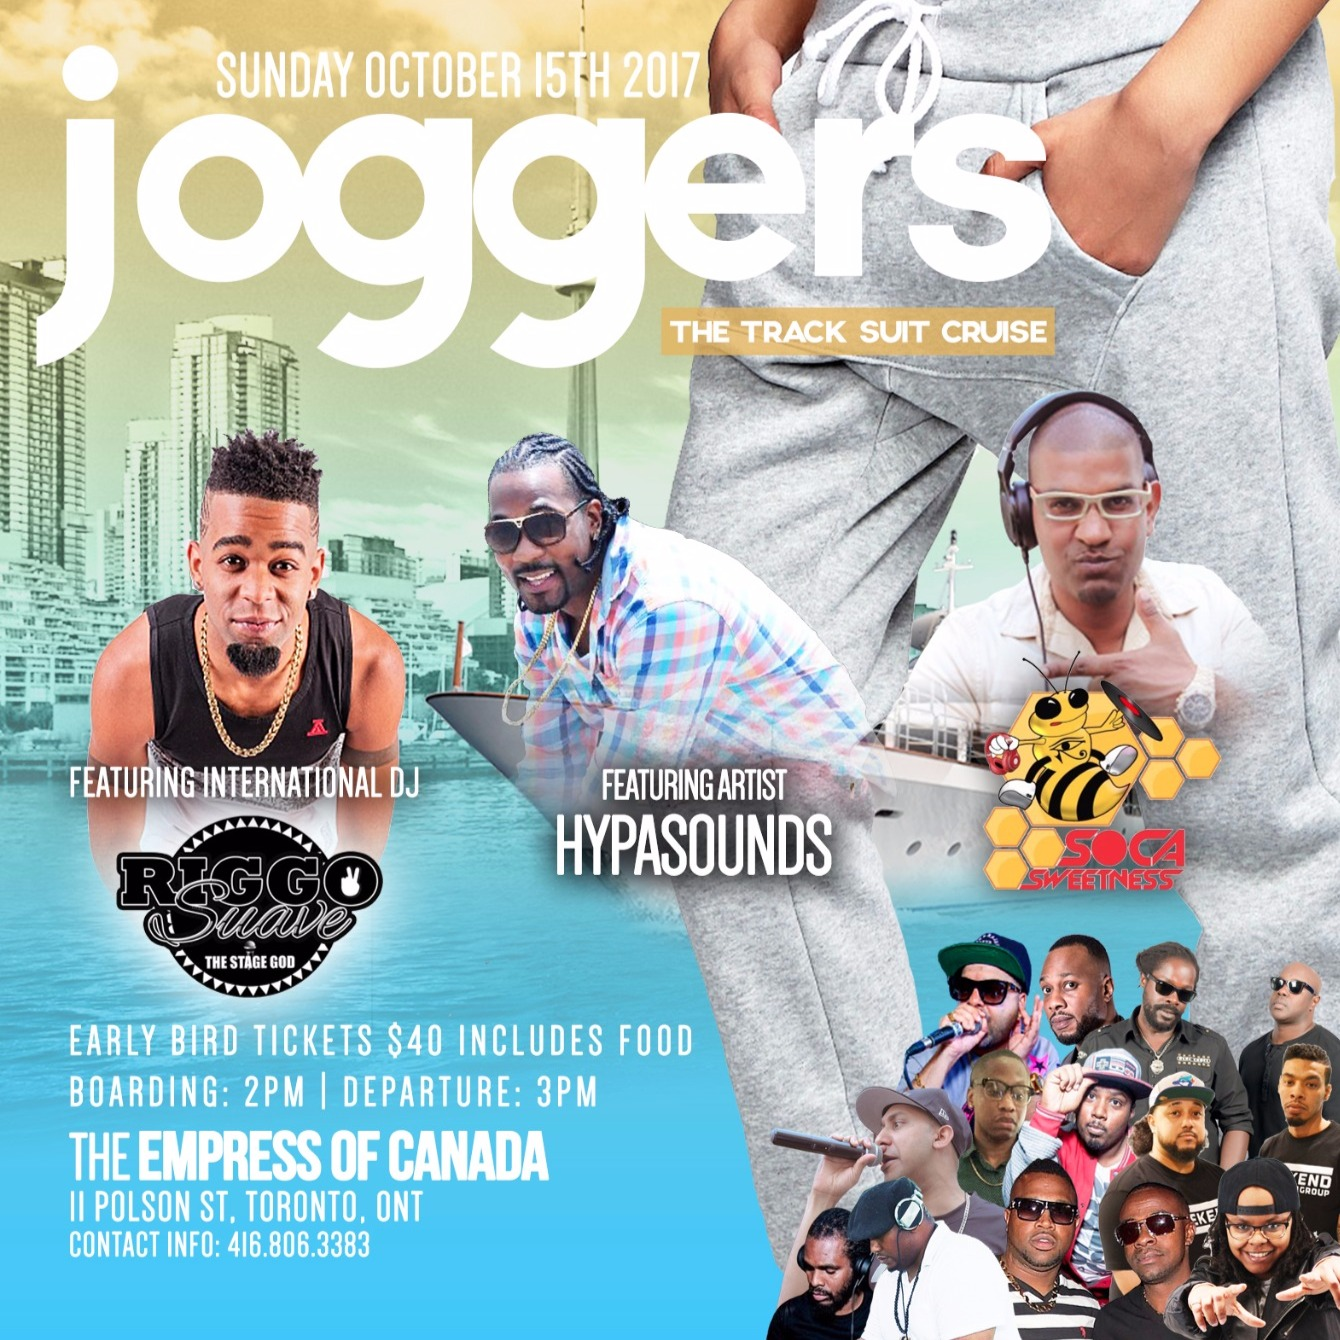 JOGGERS BOAT CRUISE